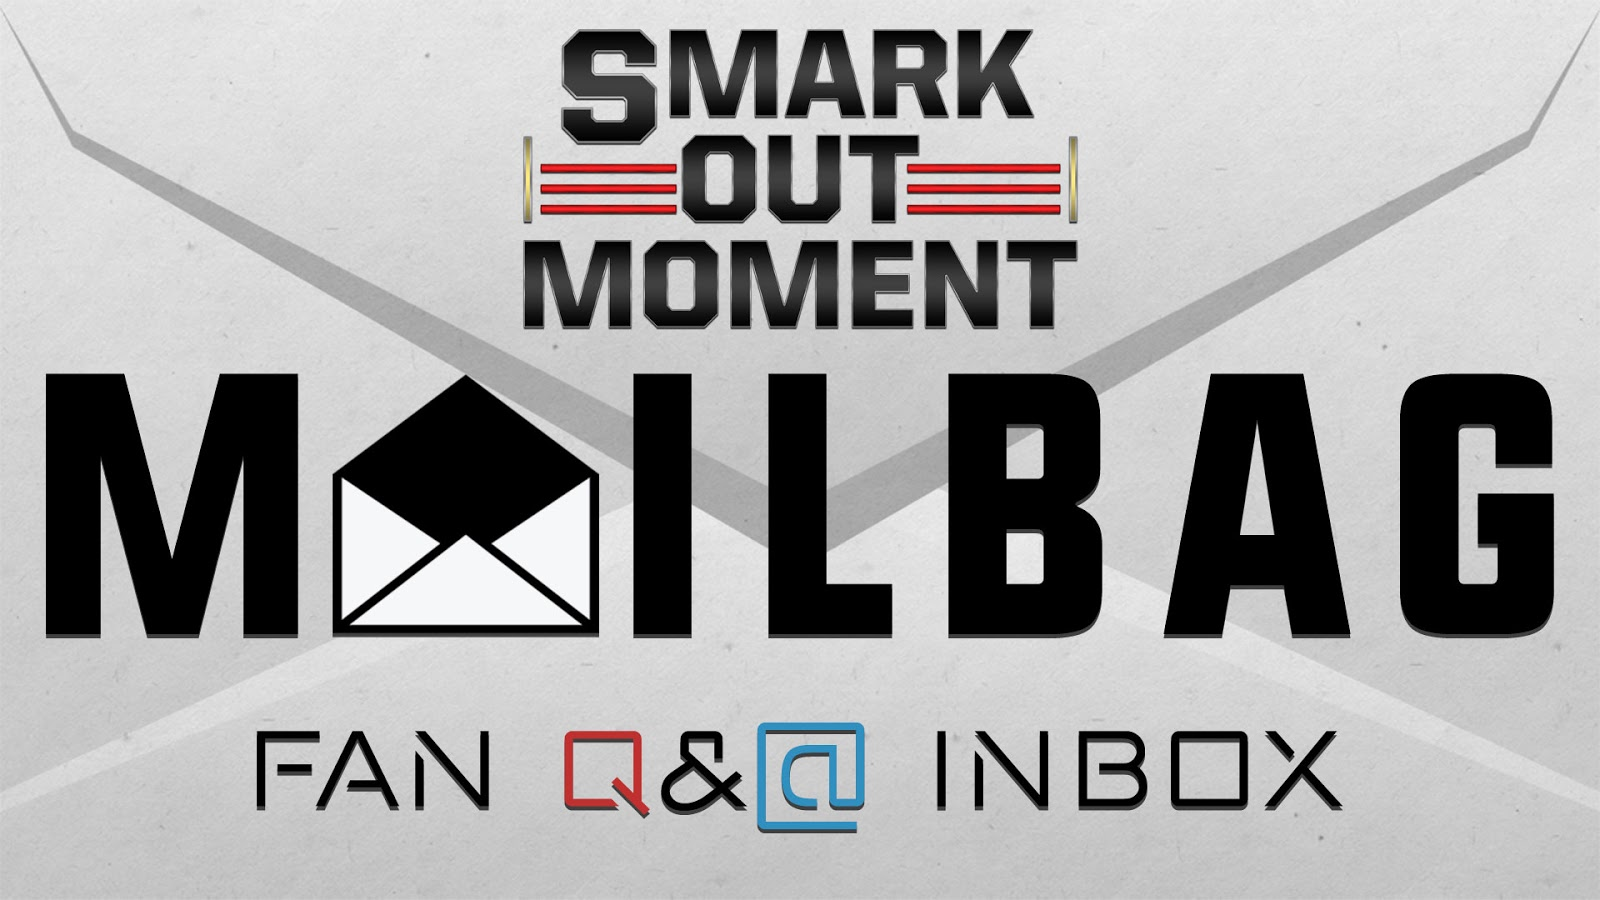 Pro Wrestling Mailbag Smark Out Moment fan questions